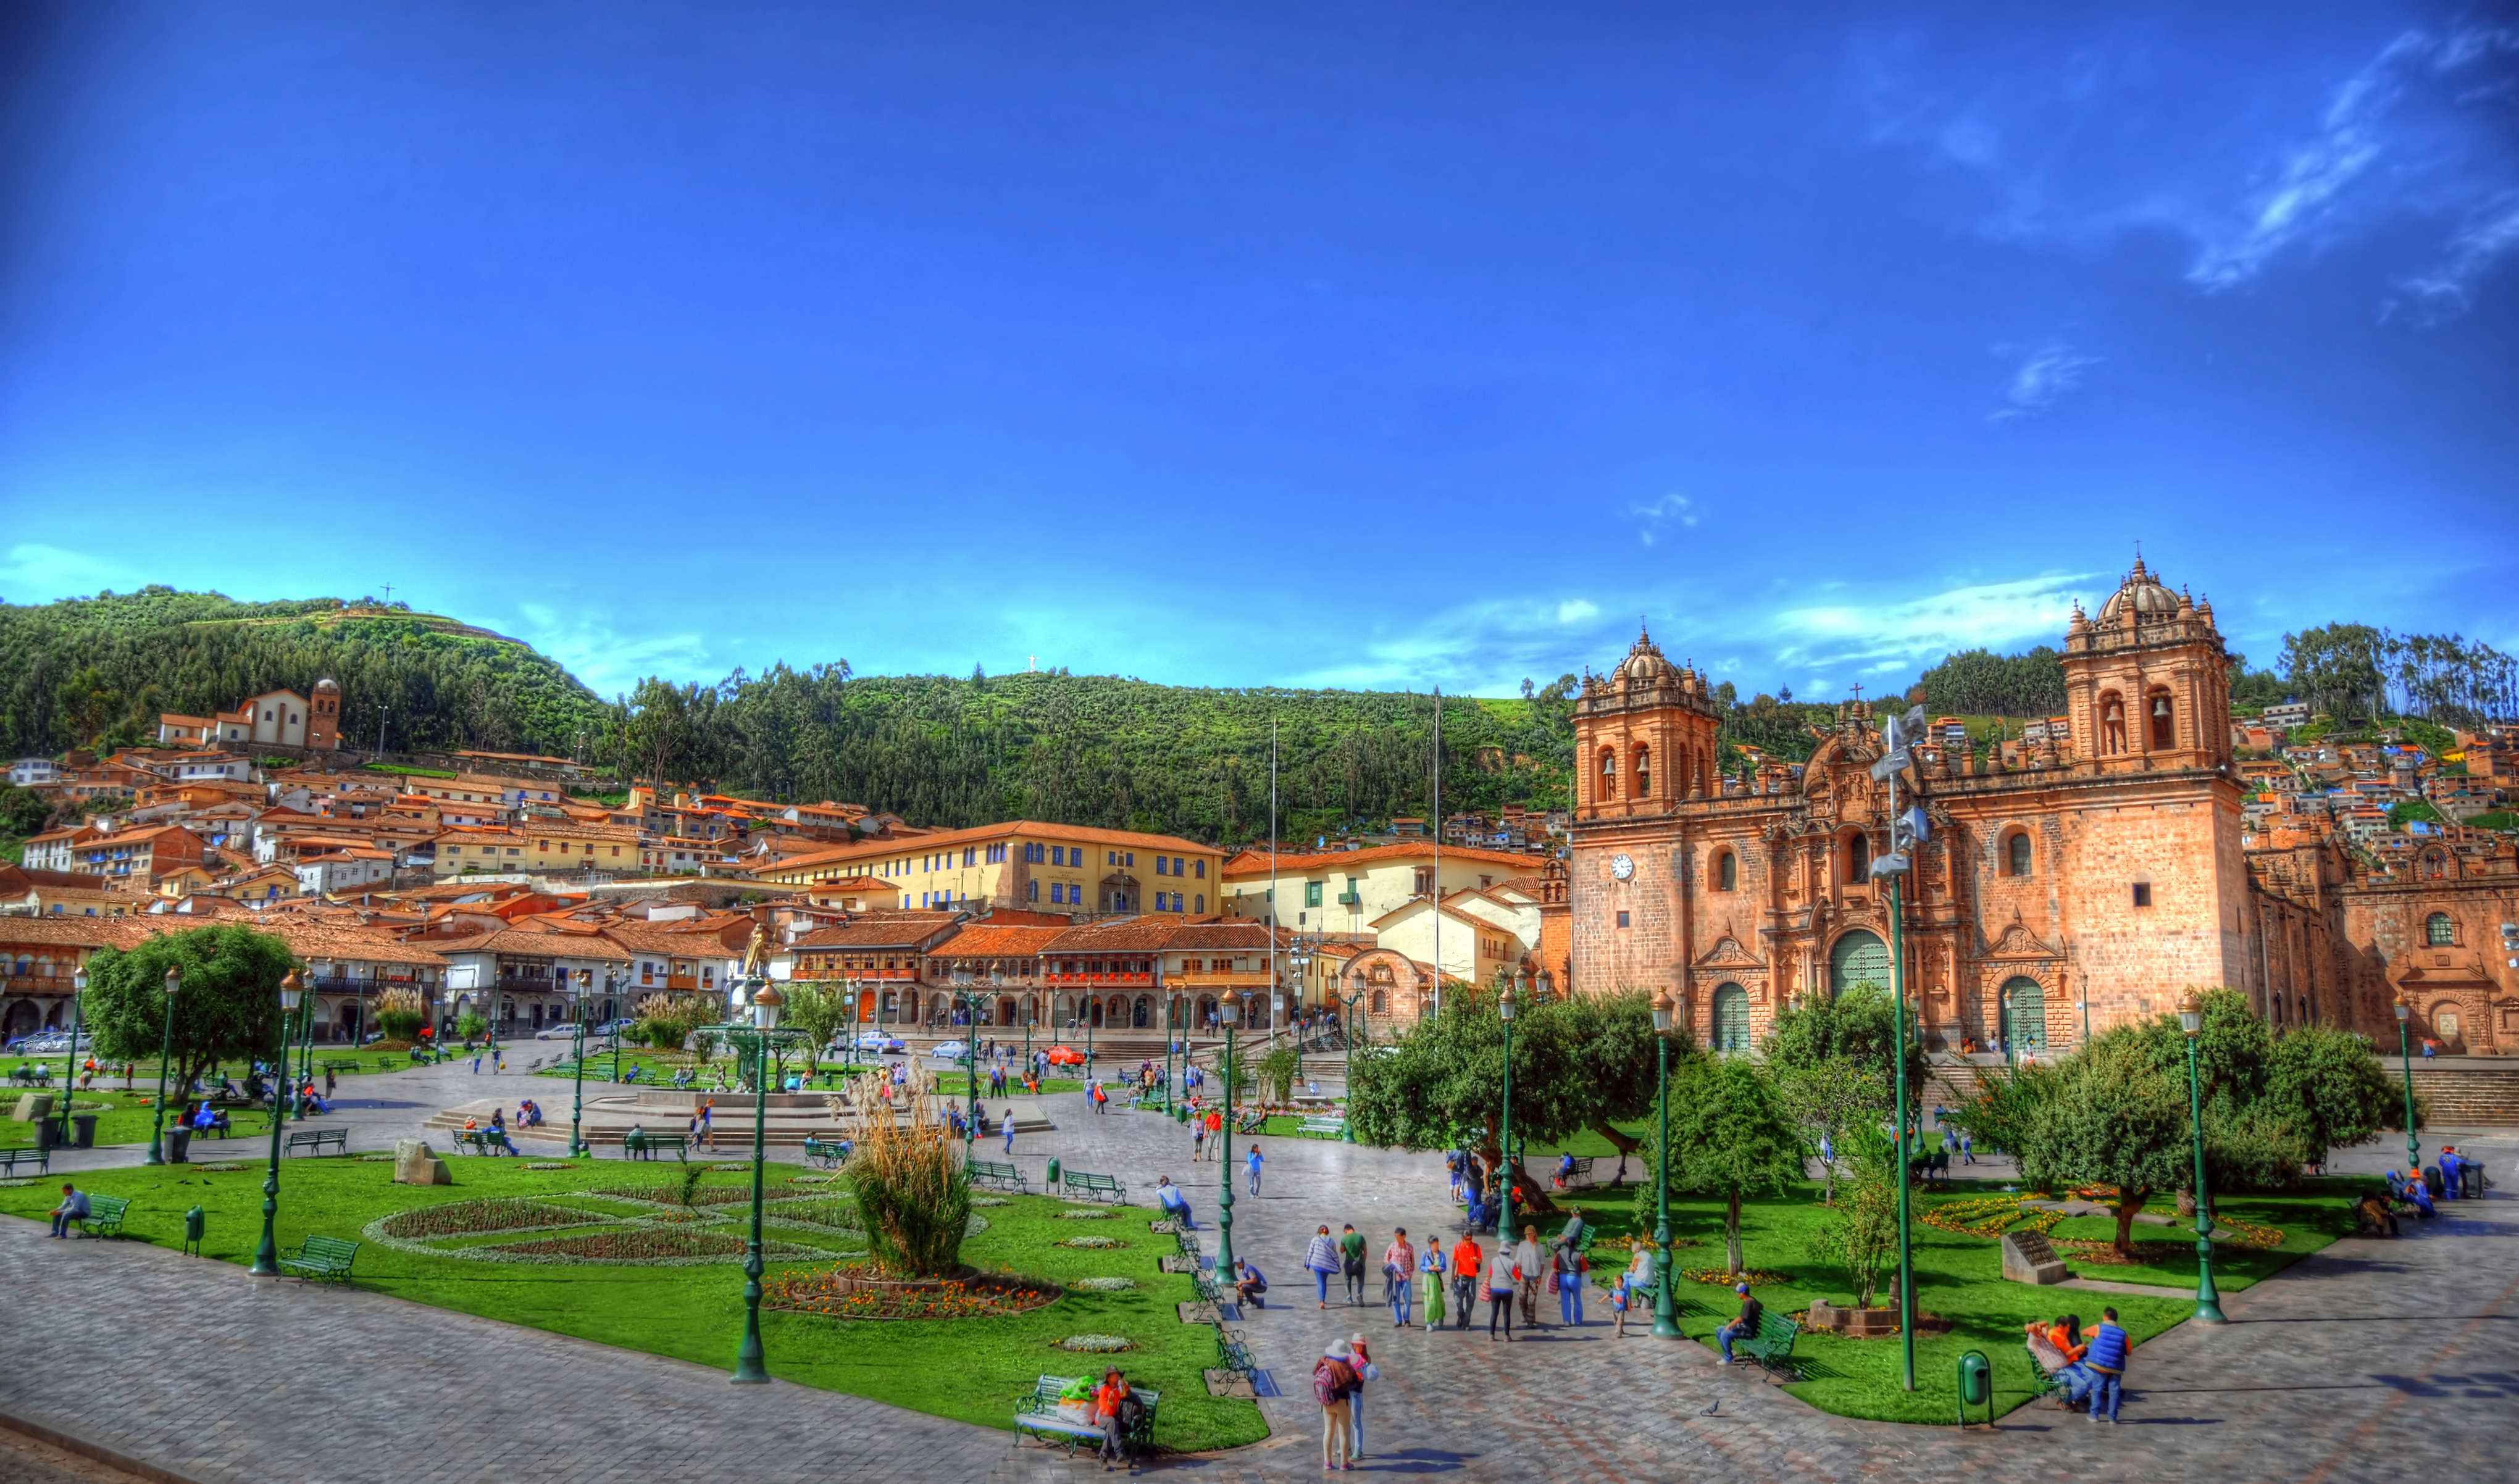 the Park and buildings at Plaza de Armas in Cusco